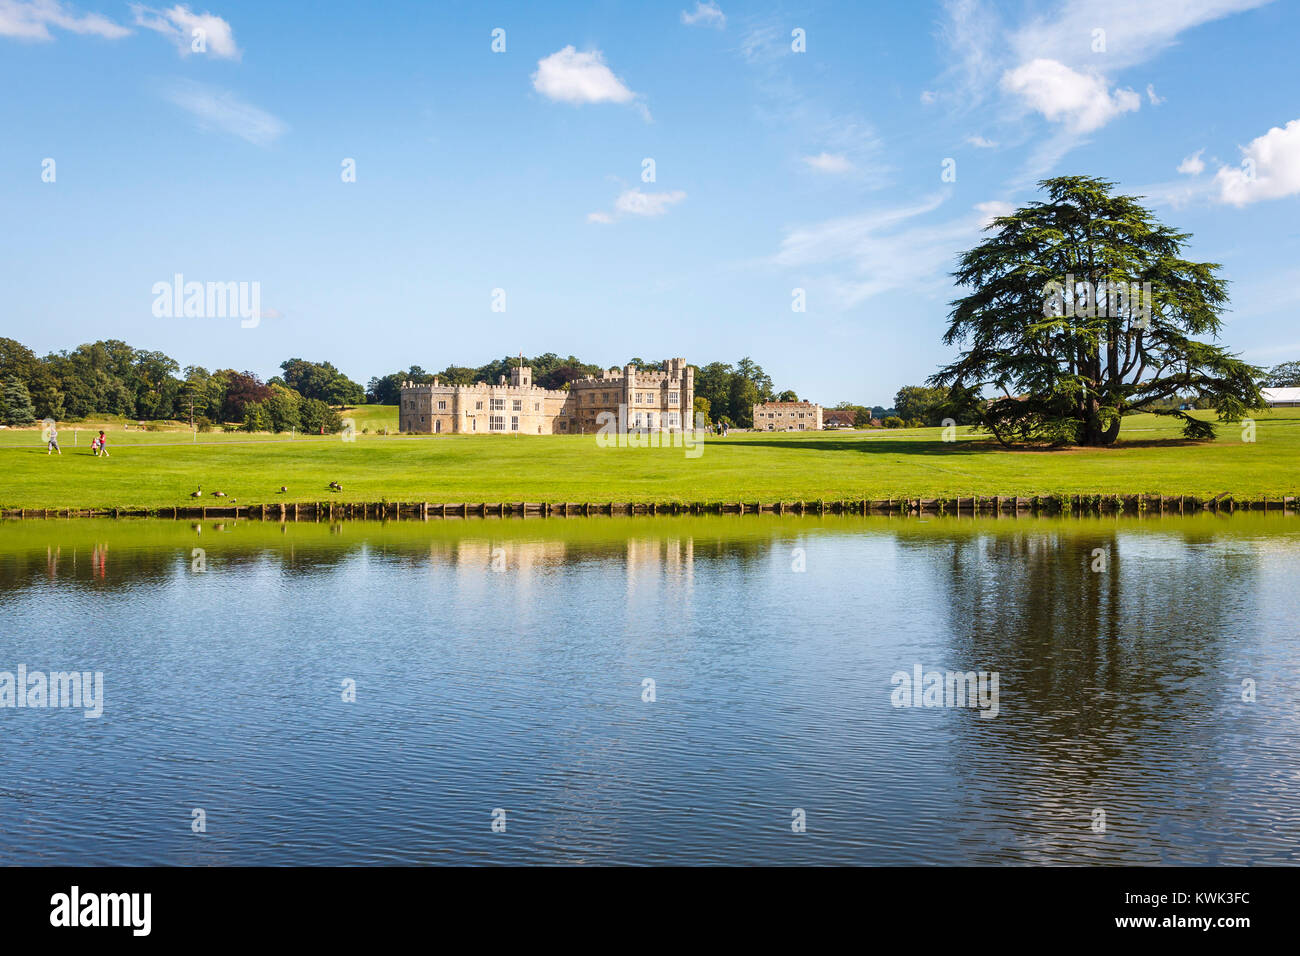 Panoramic view of the exterior of Leeds Castle, near Maidstone, Kent, southeast England, UK on a sunny summer's - Stock Image